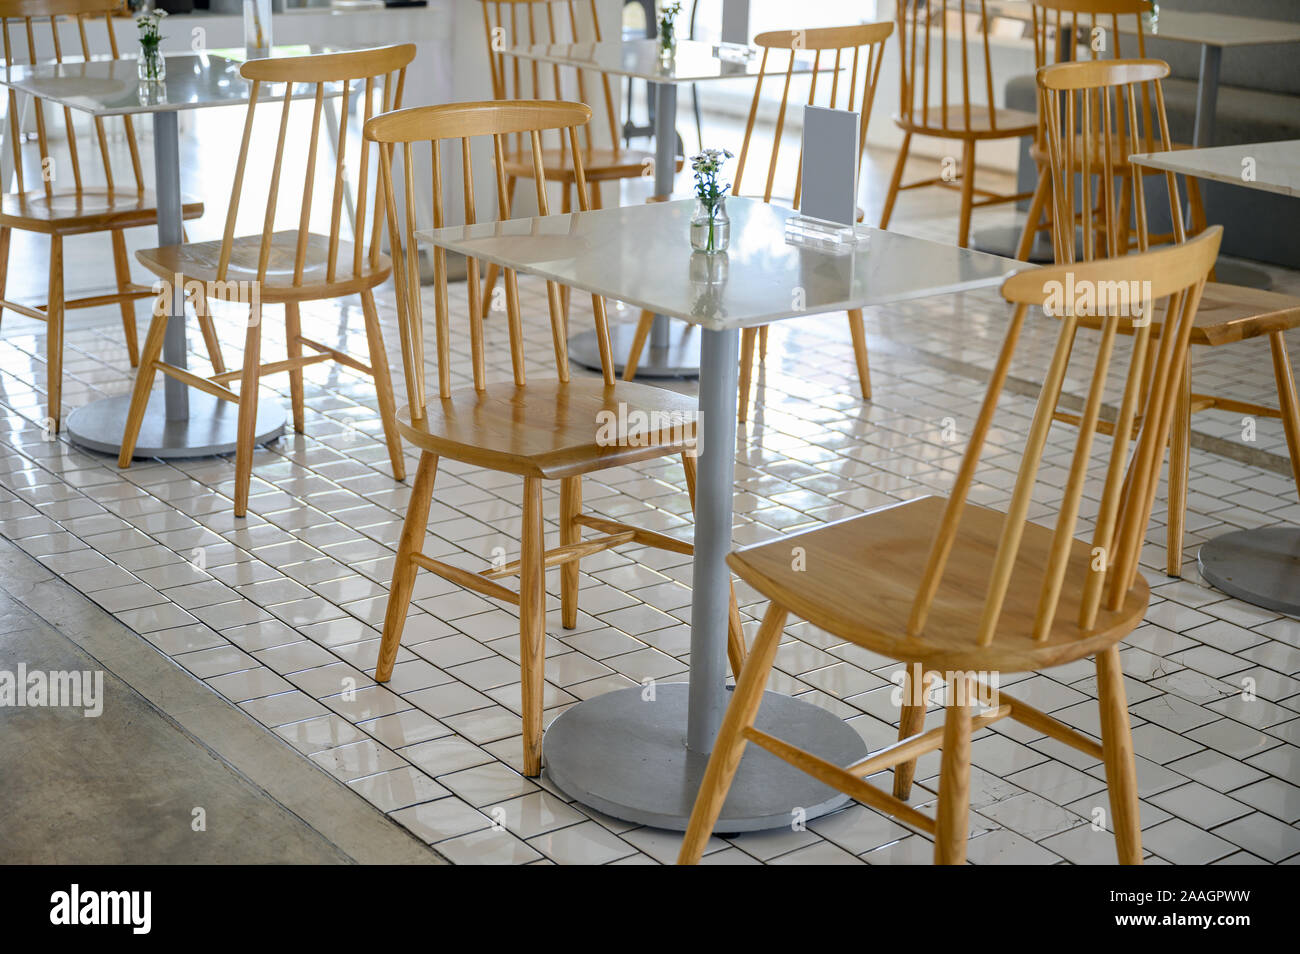 Marble Table With Wooden Chairs And Flower Decoration In Bistro Cafe Stock Photo Alamy